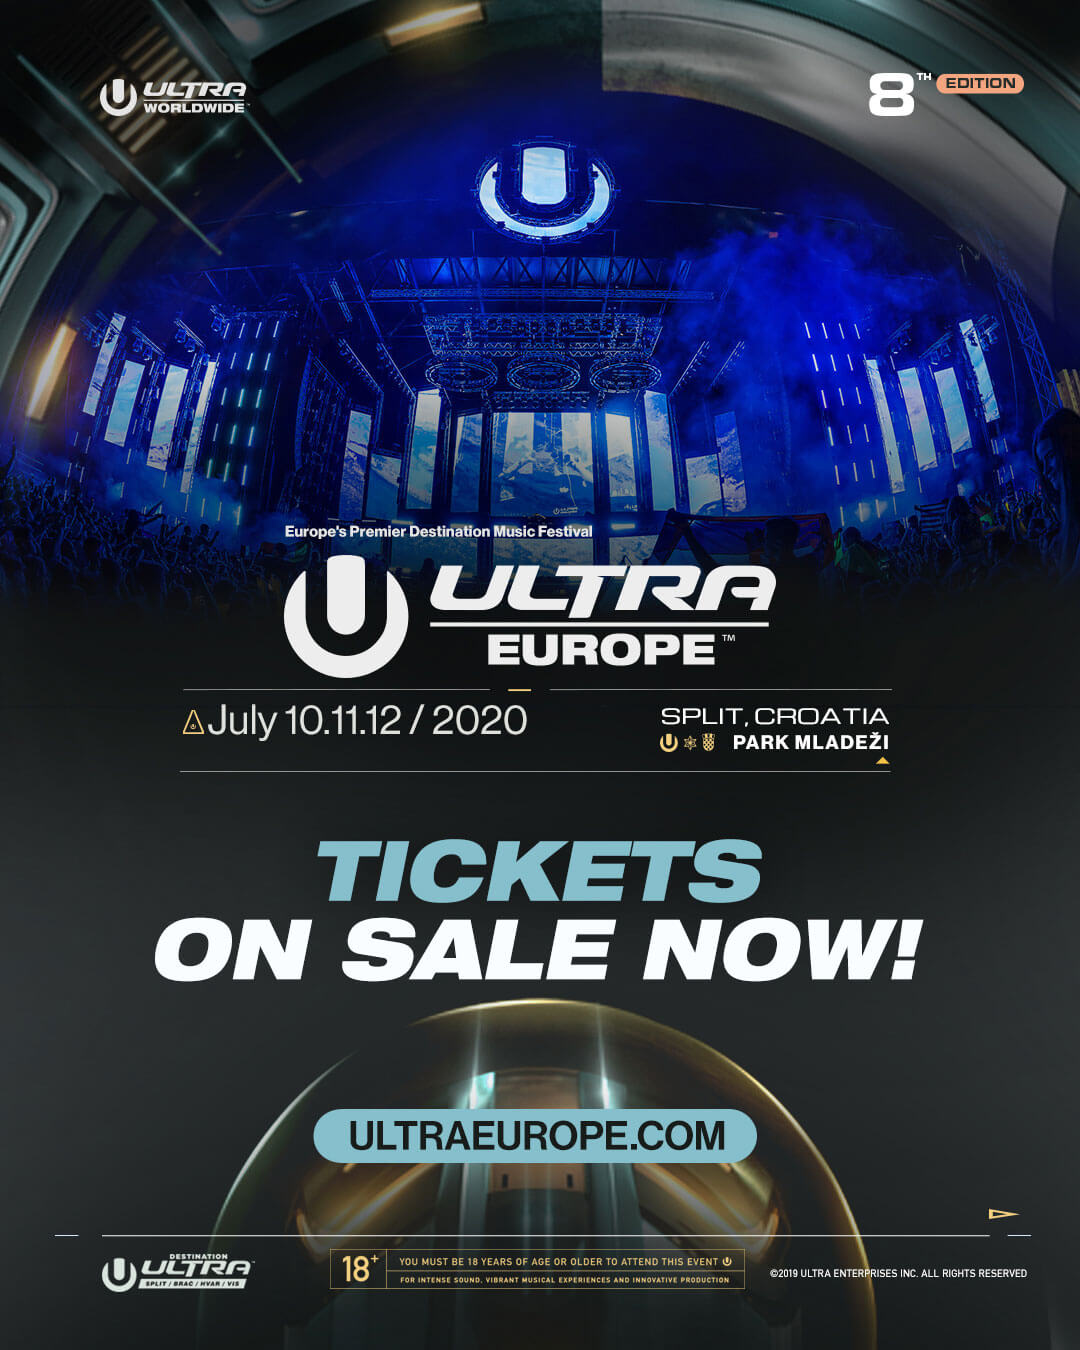 Ultra Europe 2020 Tickets On Sale Now!